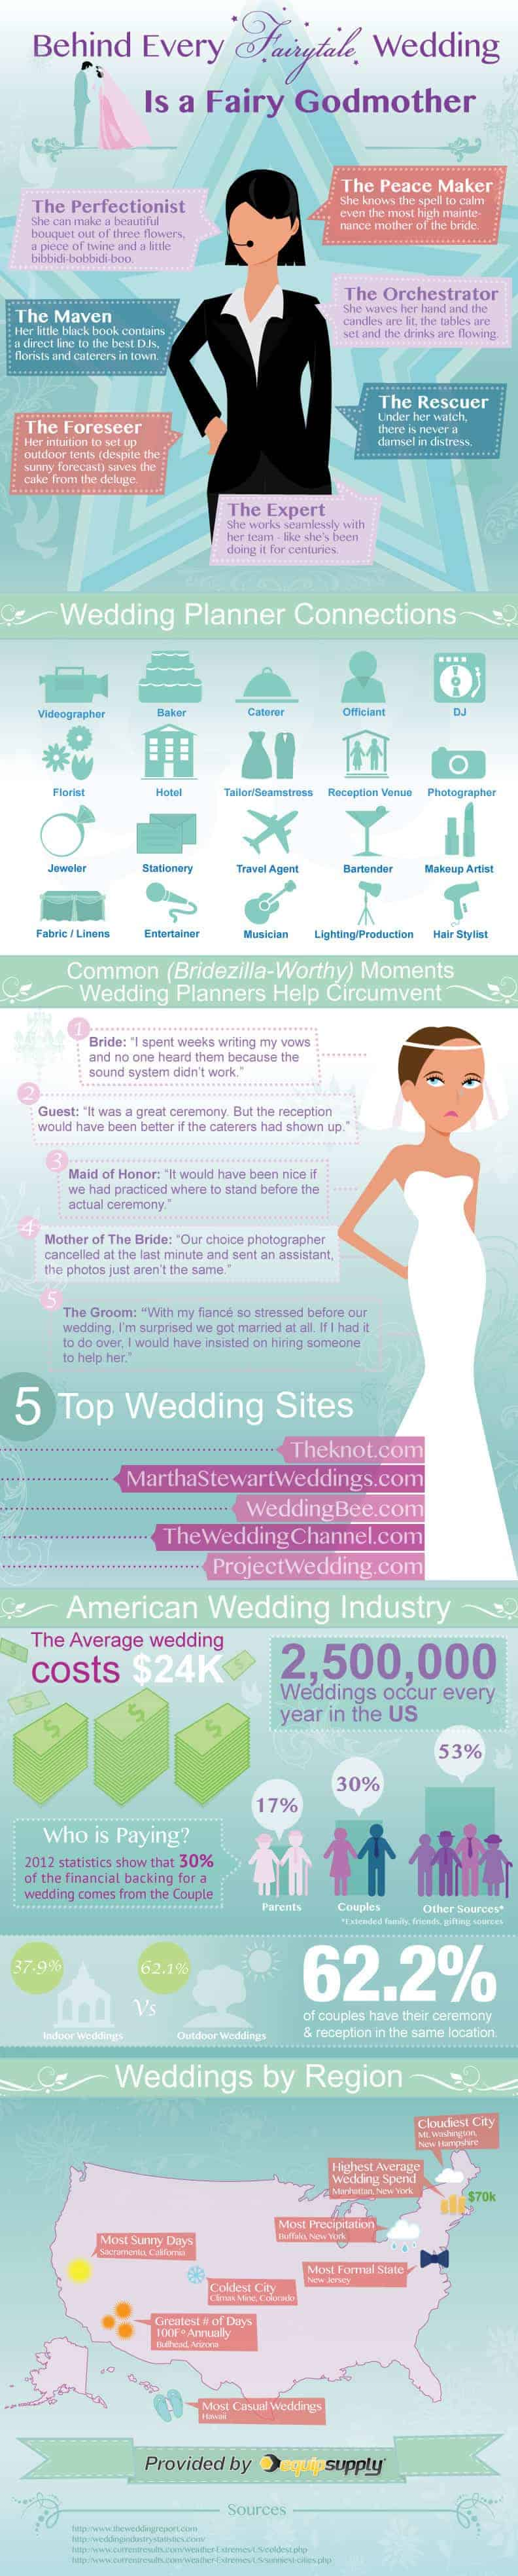 Here Is The Infographic For Wedding Planner Which Shows Connection Of